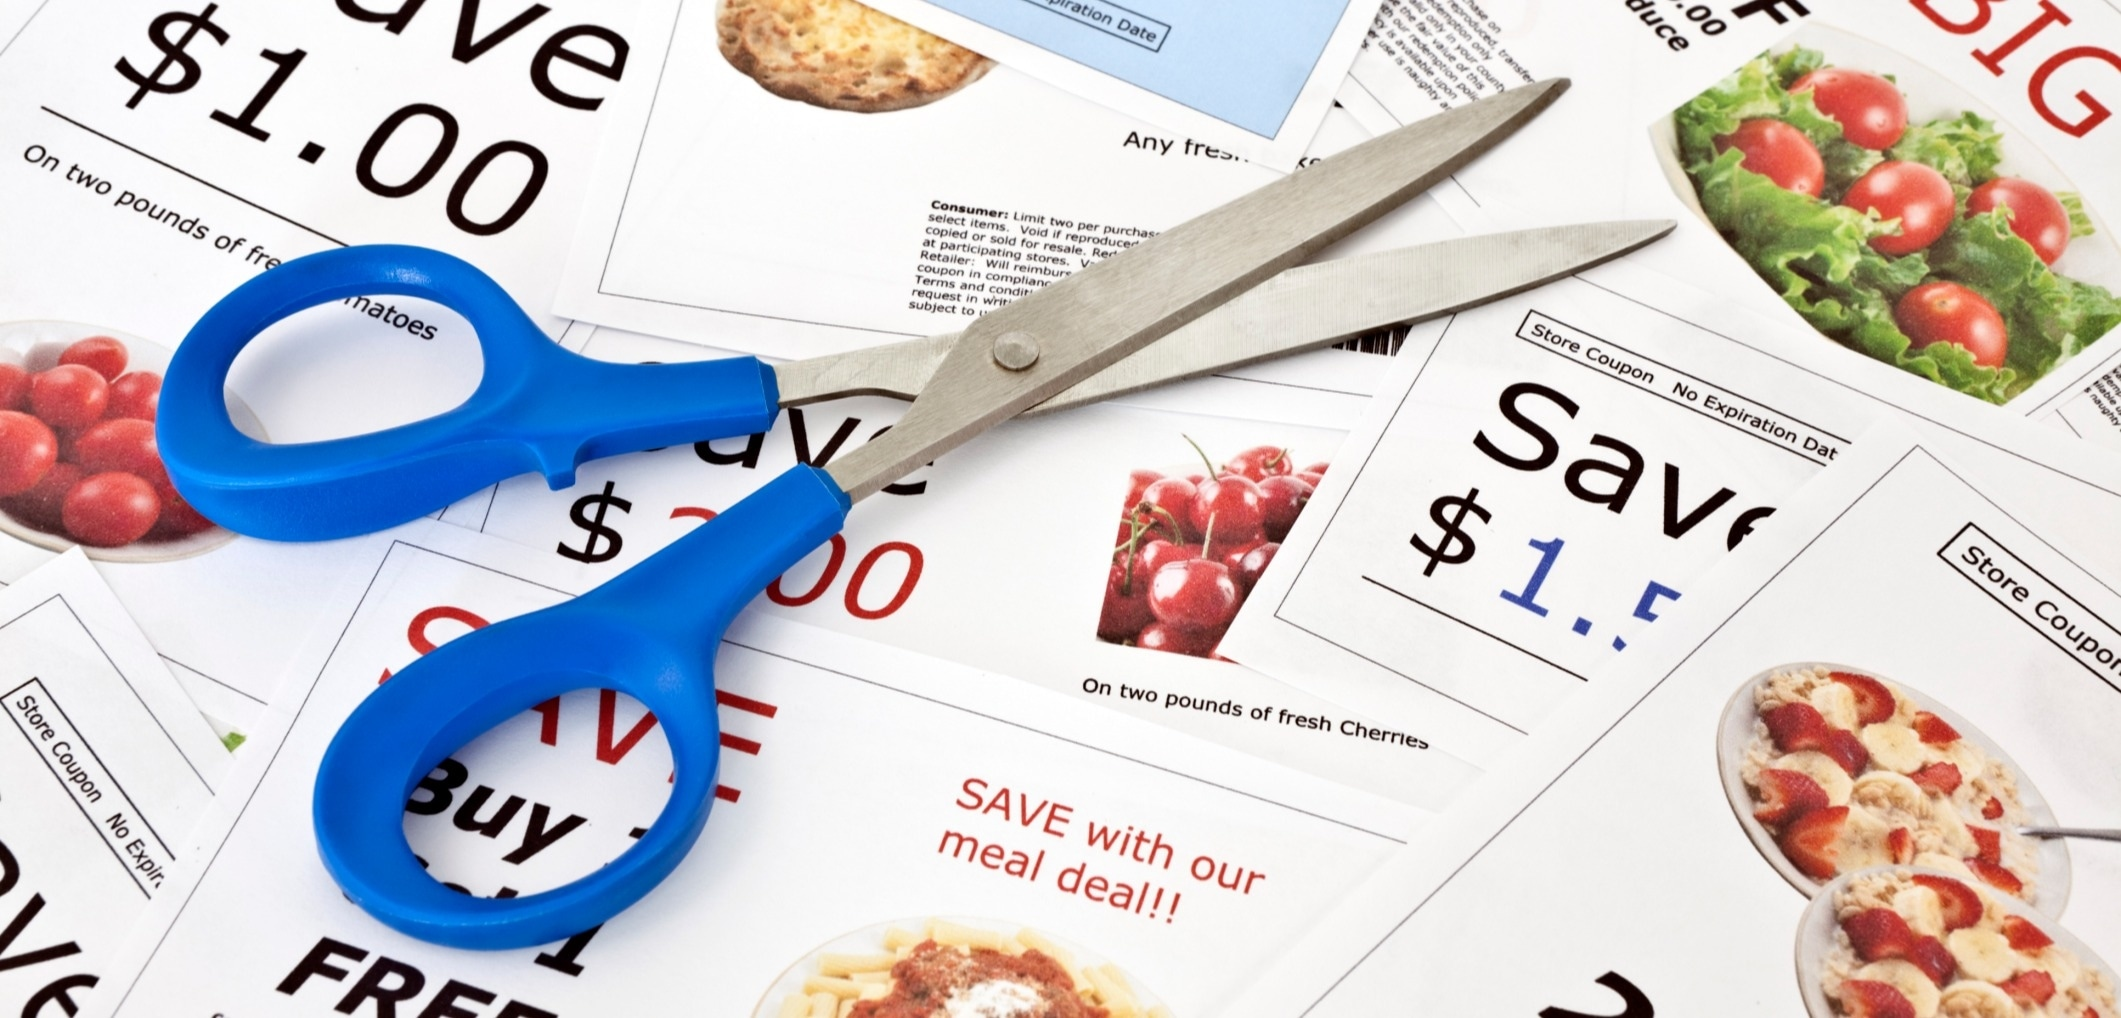 7 Signs That You've Become an Obsessive Couponer (And It's Time to Take a Break!)